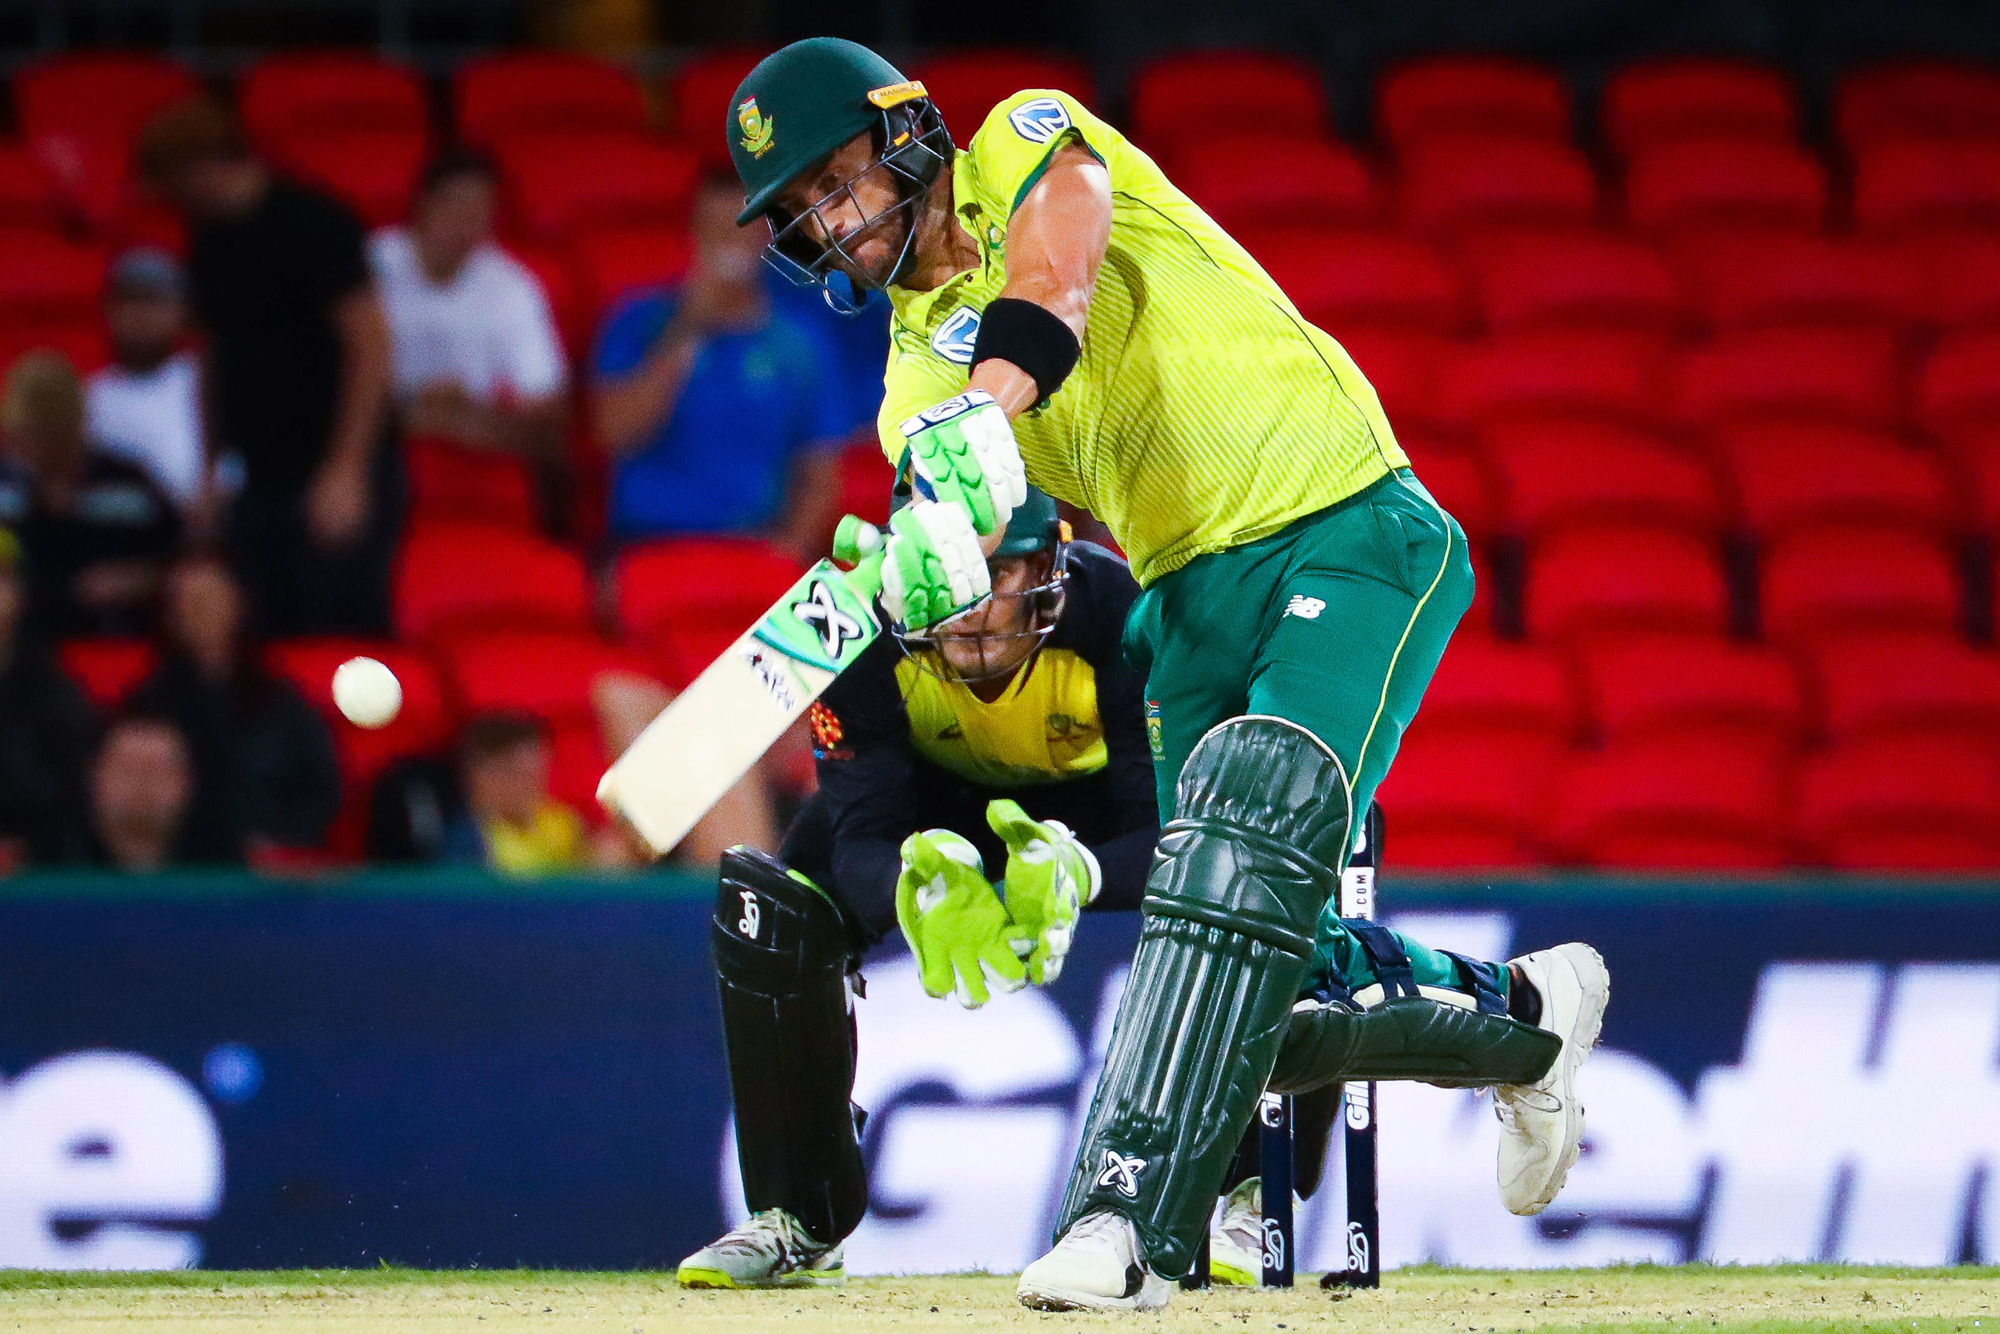 Faf du Plessis of South Africa plays a shot during the T20 international cricket match between Australia and South Africa at Metricon Stadium on the Gold Coast on November 17, 2018. (Photo by Patrick HAMILTON / AFP) / -- IMAGE RESTRICTED TO EDITORIAL USE